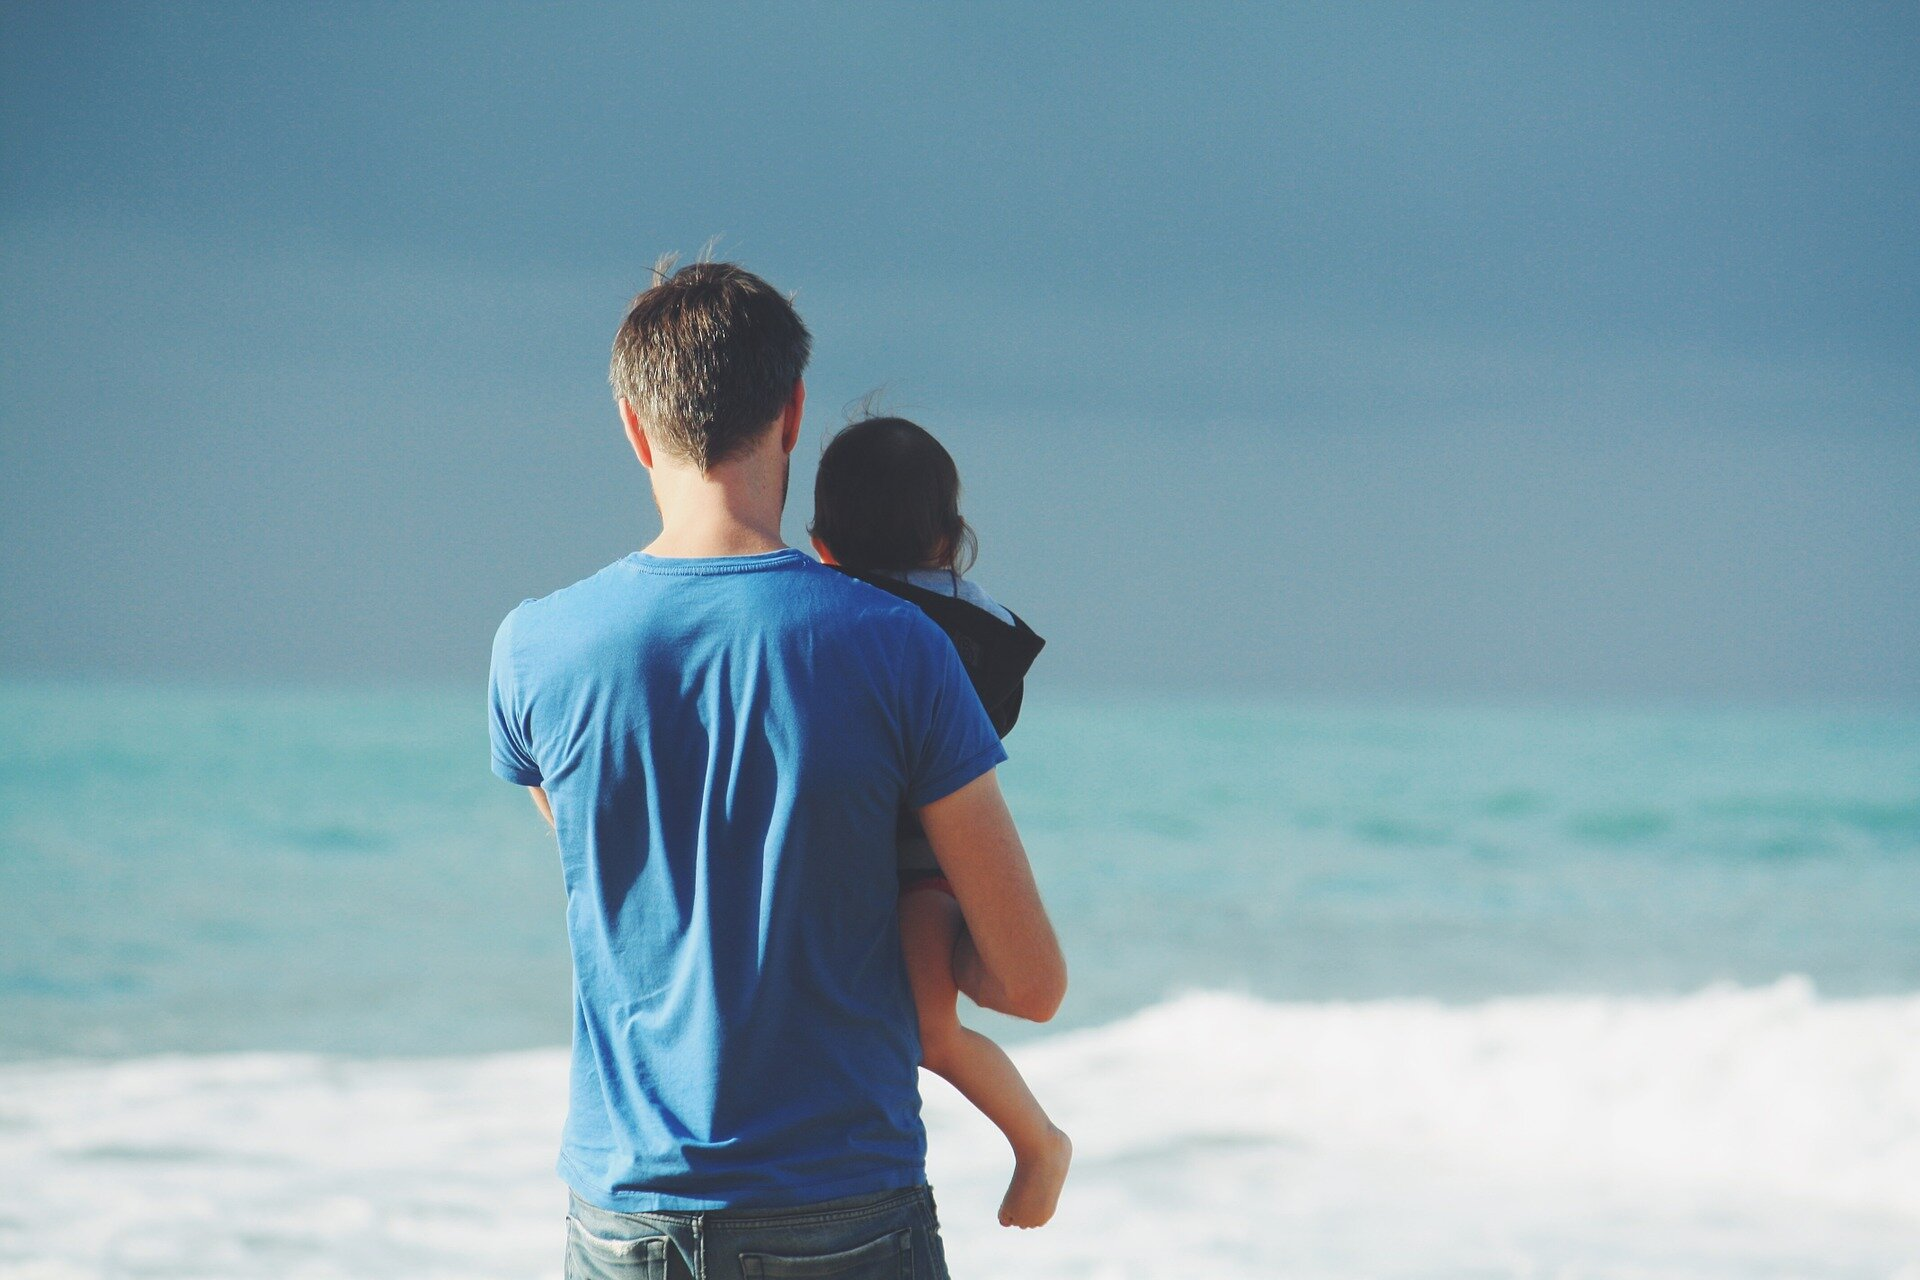 Perfectionists may be more prone to helicopter parenting,...